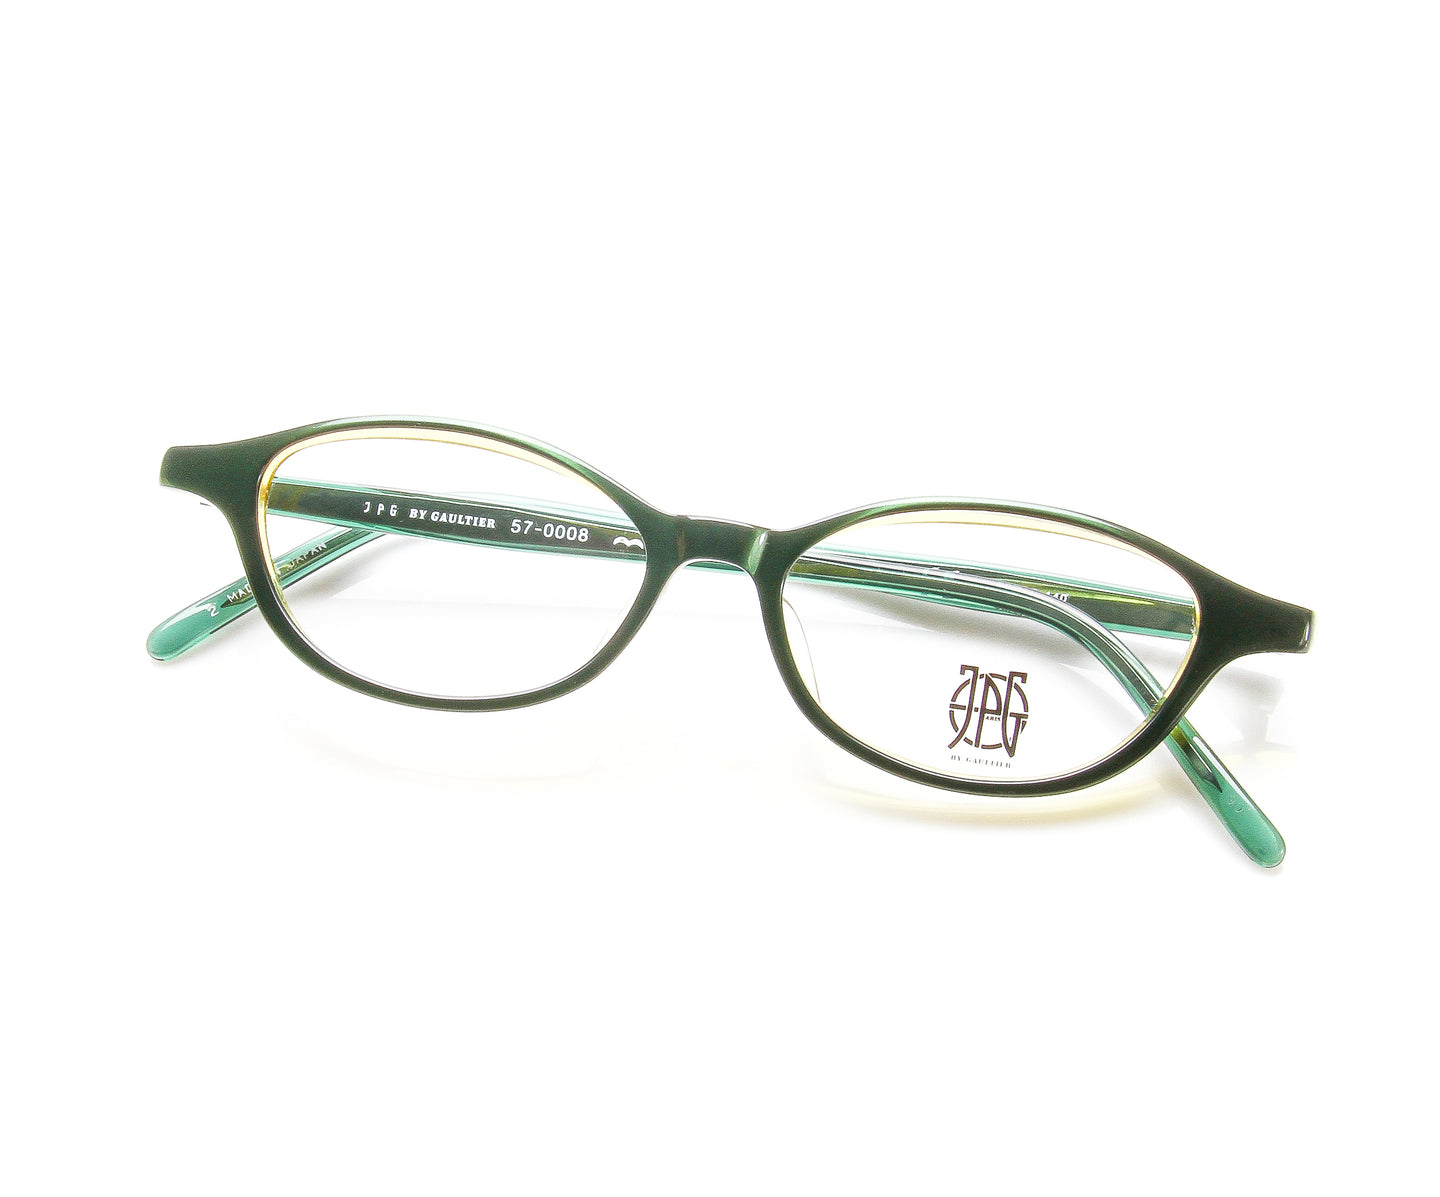 Jean Paul Gaultier 57 0008 2, Jean Paul Gaultier , glasses frames, eyeglasses online, eyeglass frames, mens glasses, womens glasses, buy glasses online, designer eyeglasses, vintage sunglasses, retro sunglasses, vintage glasses, sunglass, eyeglass, glasses, lens, vintage frames company, vf